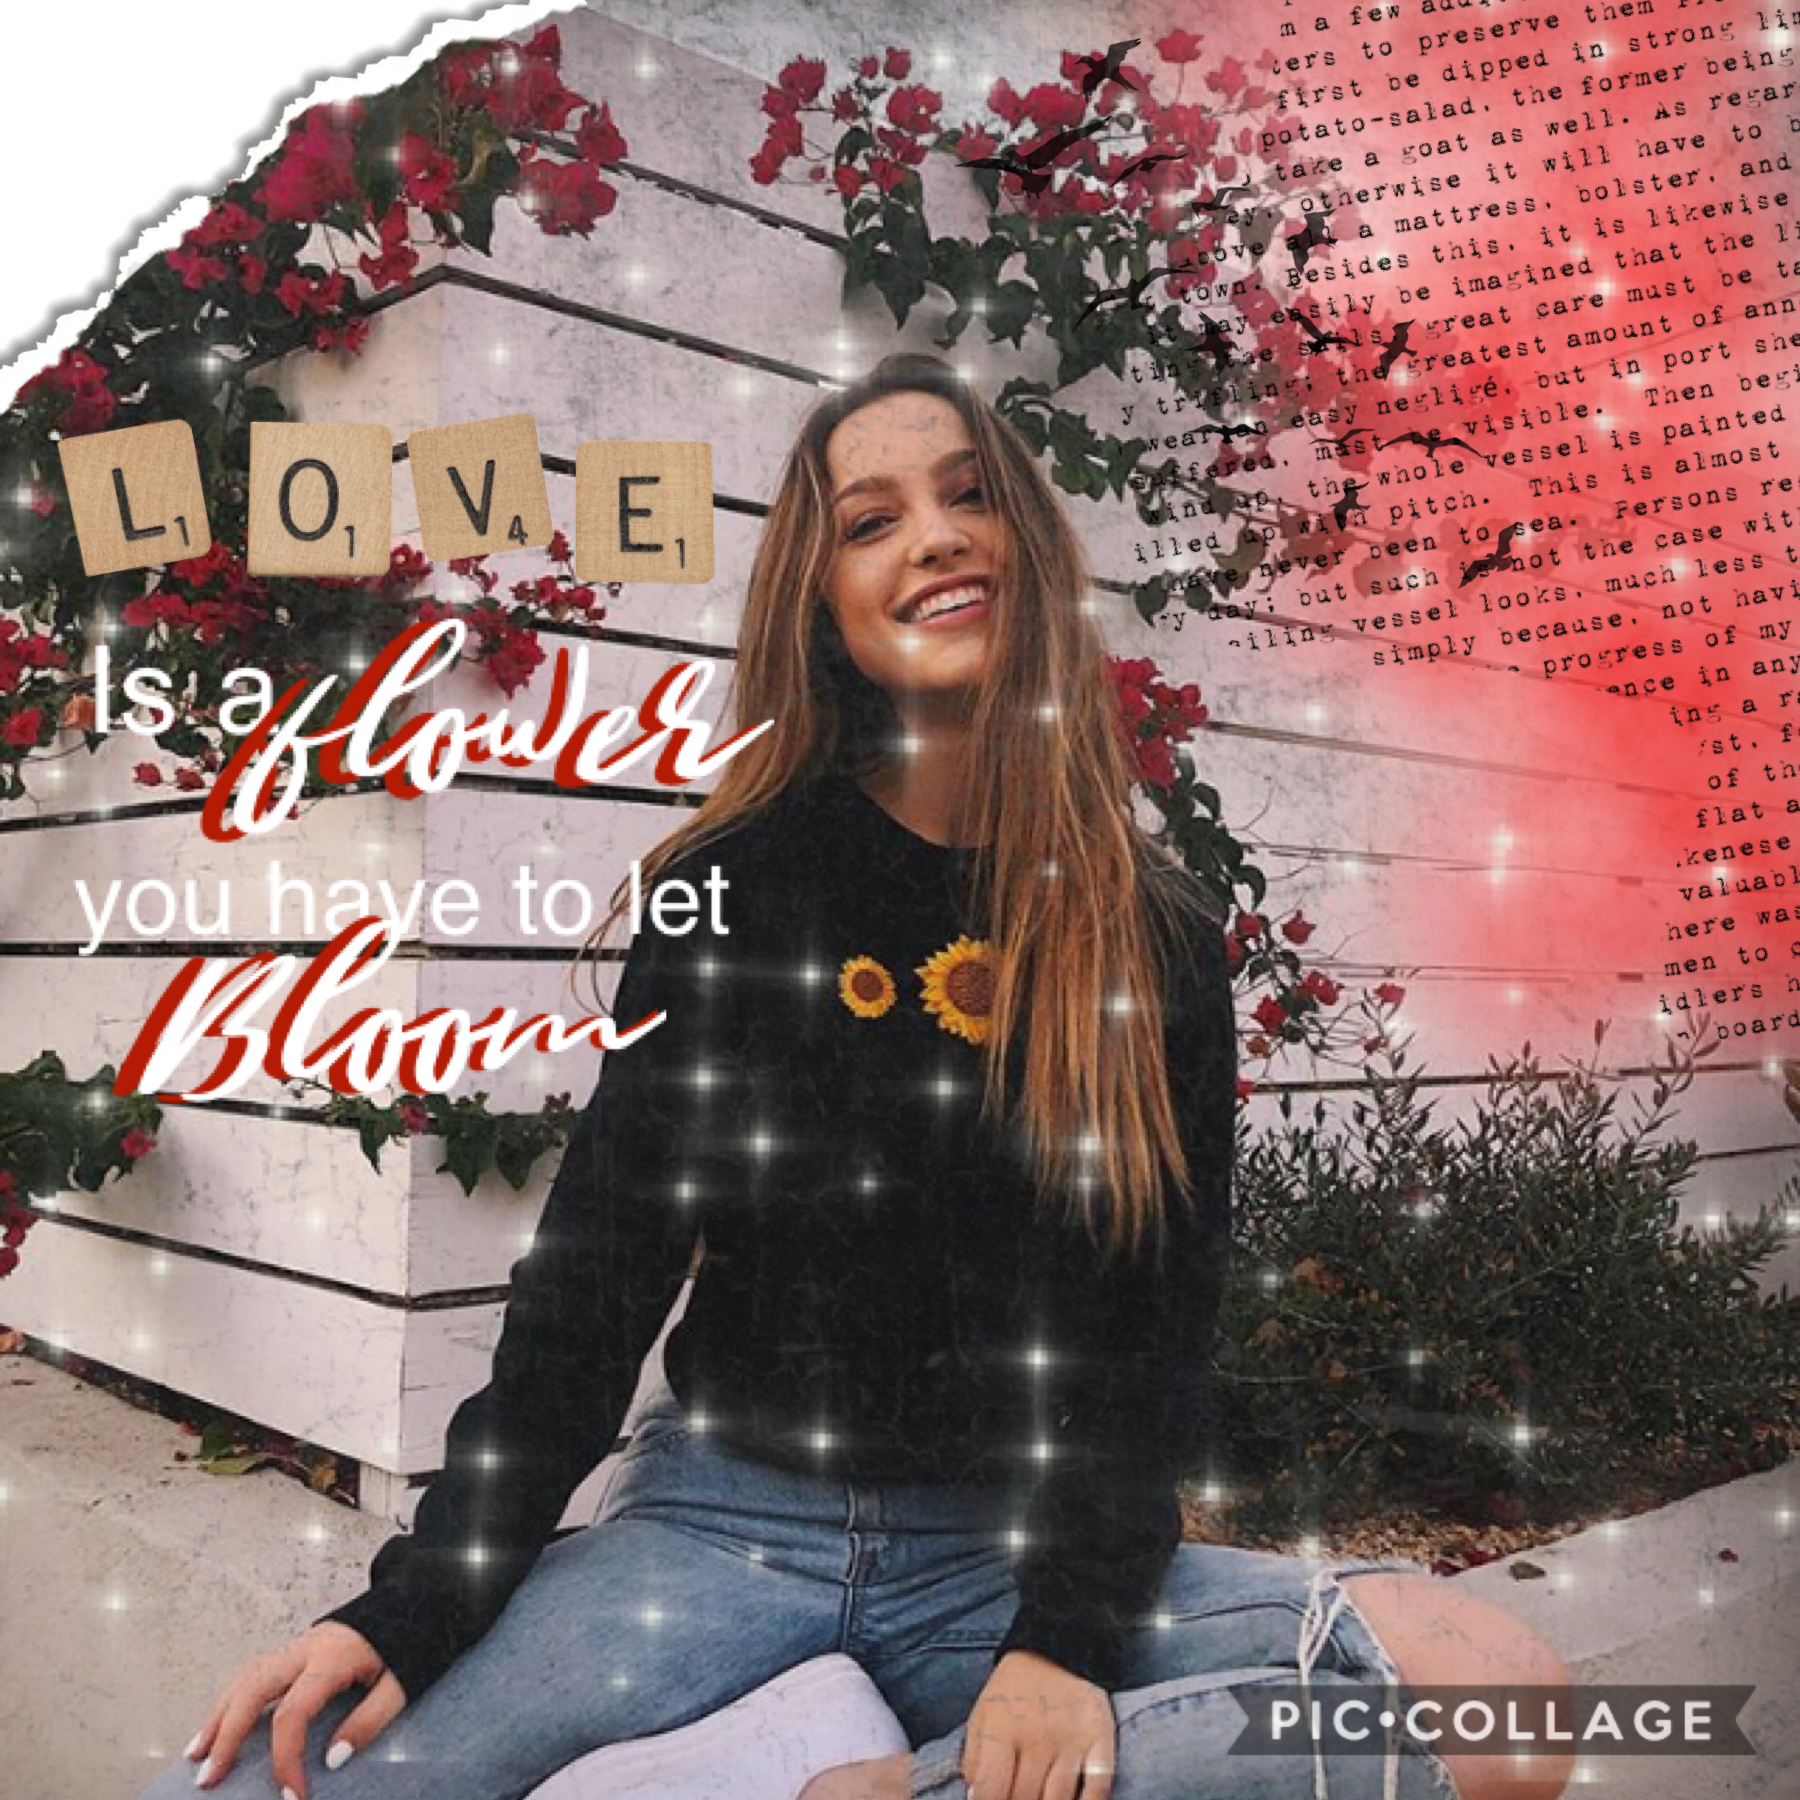 ☀️💎tap!☀️💎 Hey jewels! Just a quick edit I made throughout the day featuring my fav YouTuber! What do you guys want to see from me? Collages, challenges, packs, tell me below!